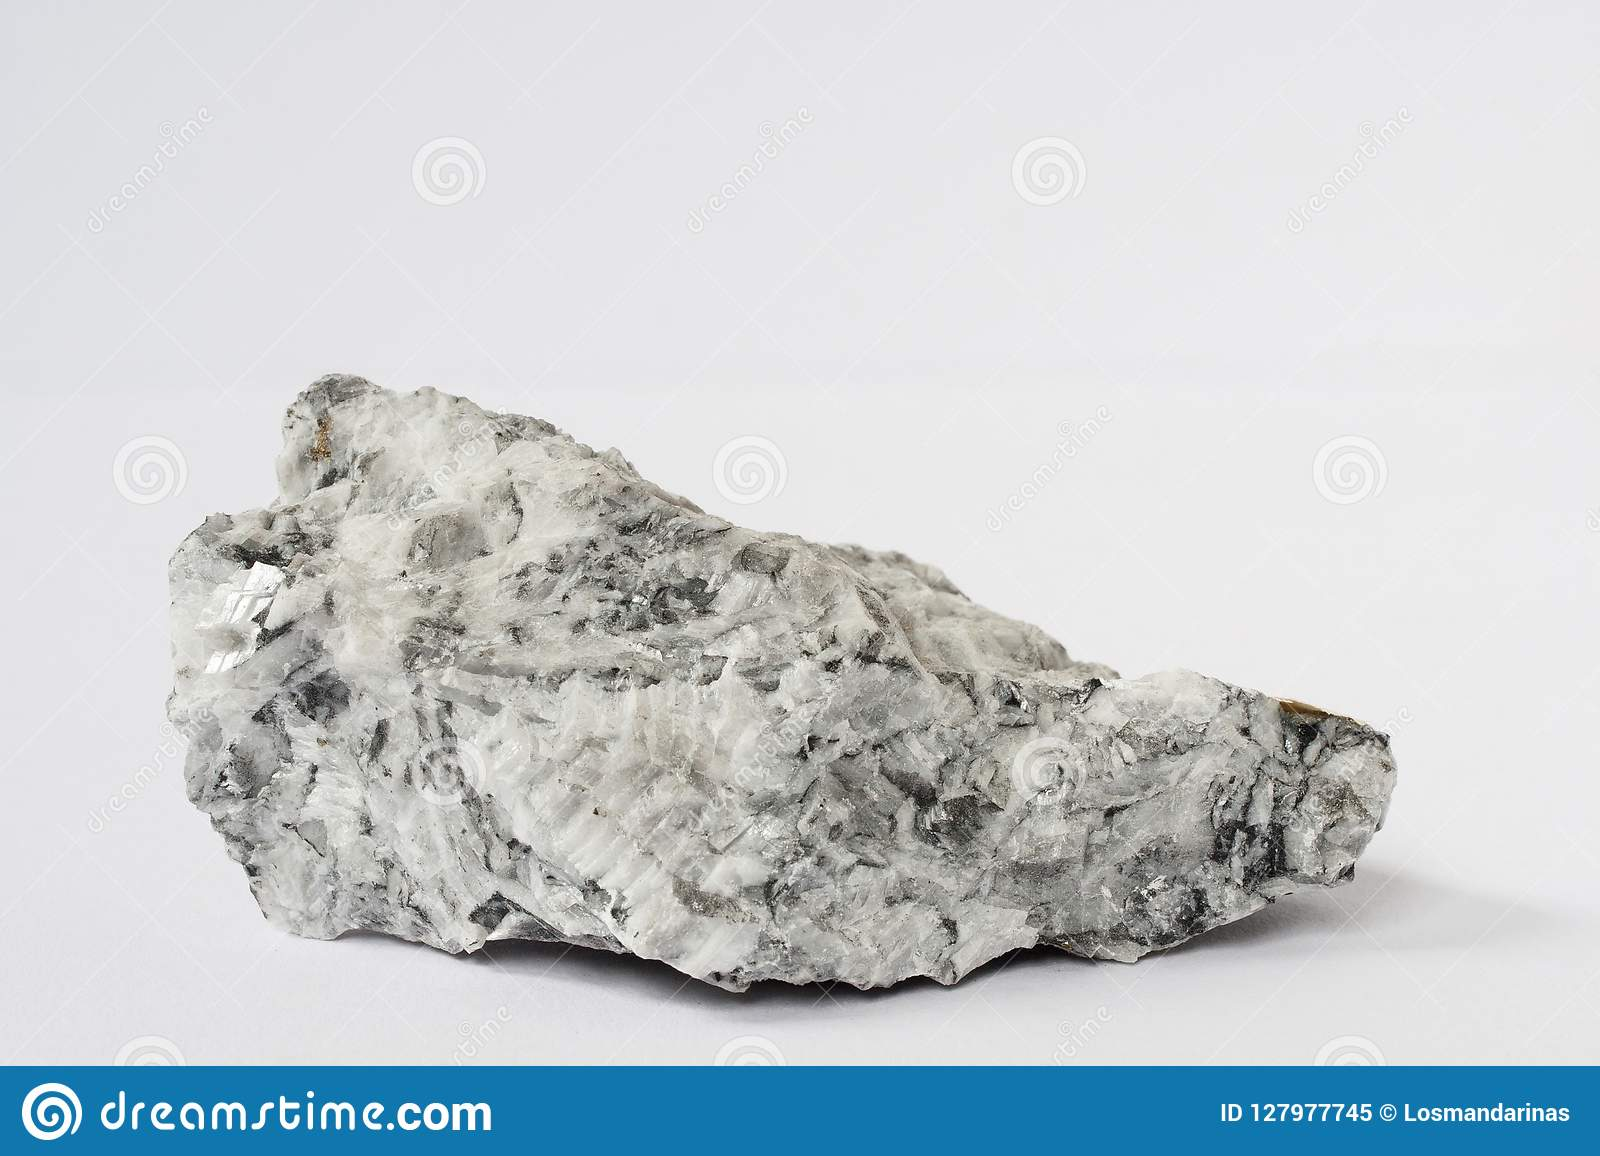 Magnesite mineral on white background